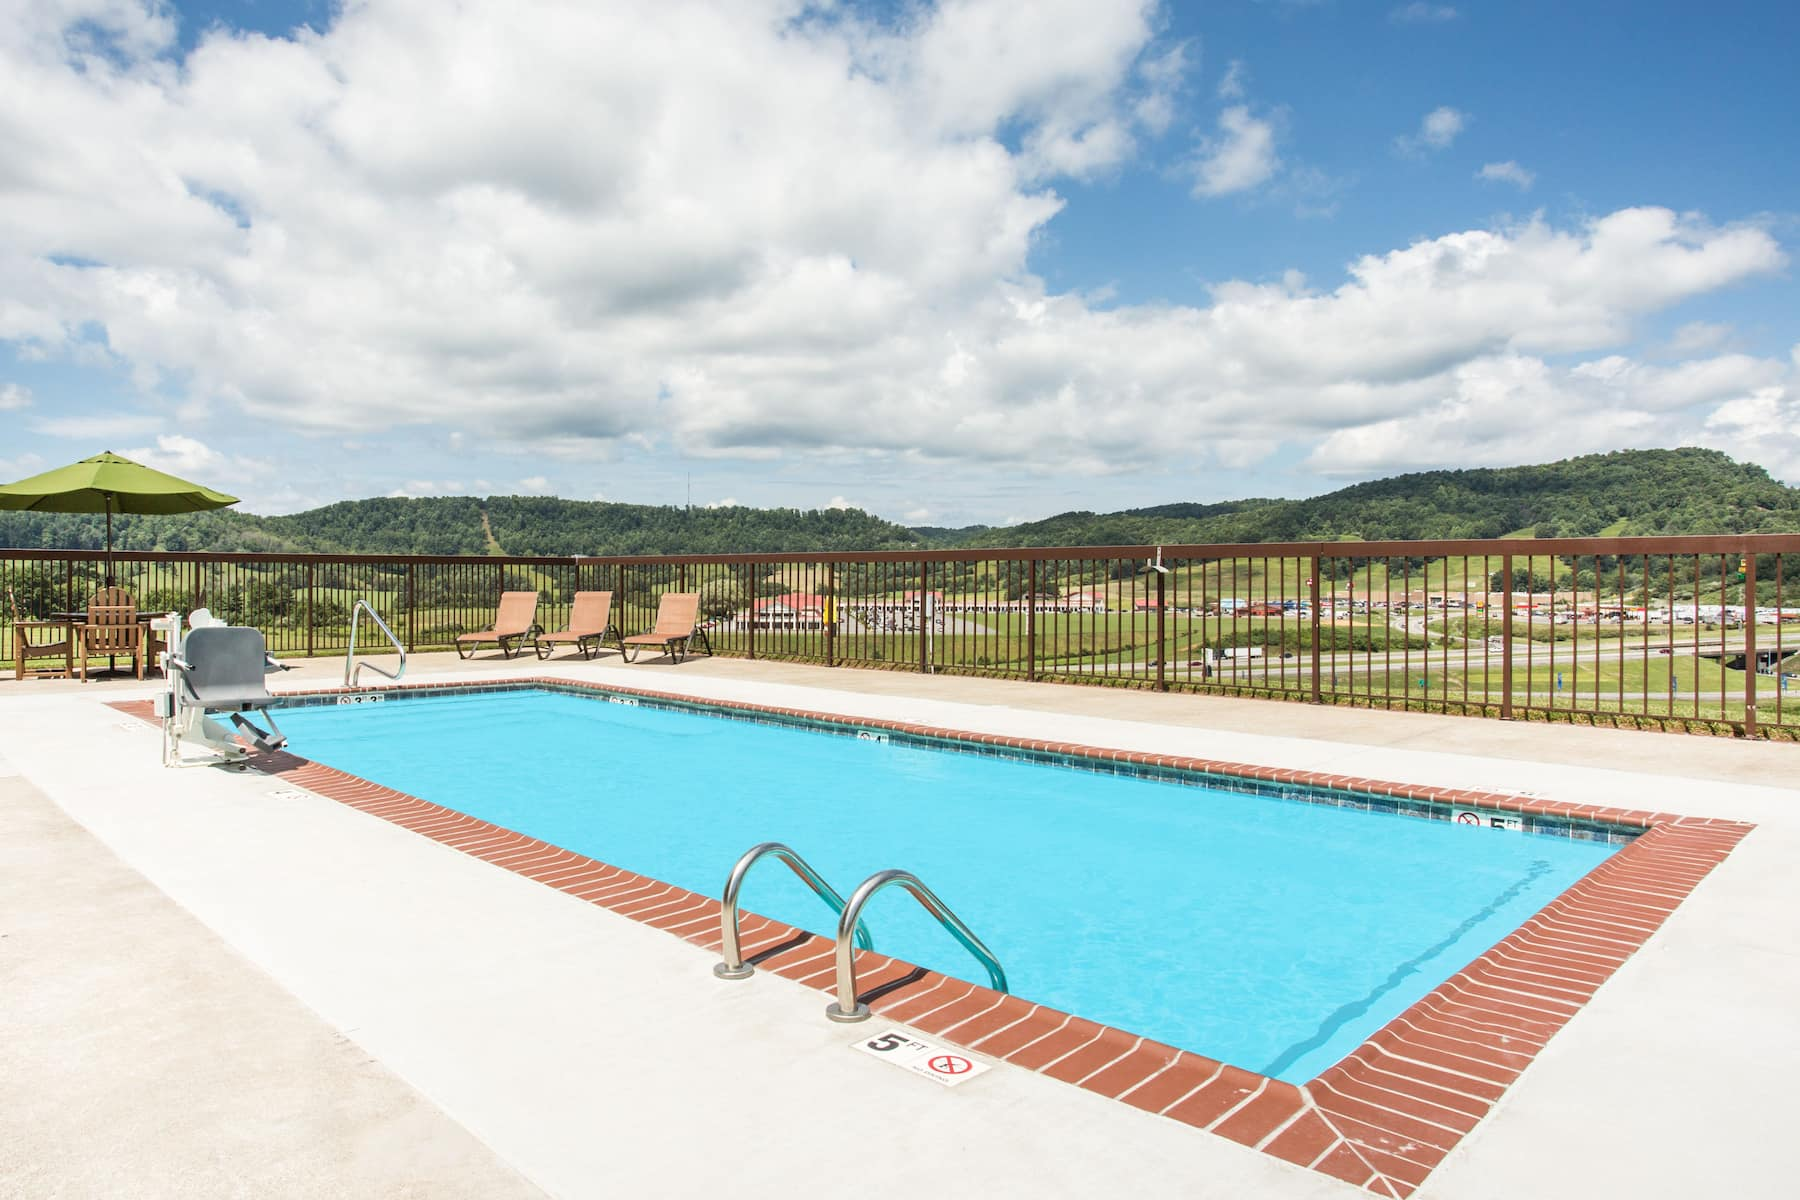 Days Inn Amp Suites By Wyndham Sutton Flatwoods Sutton Wv